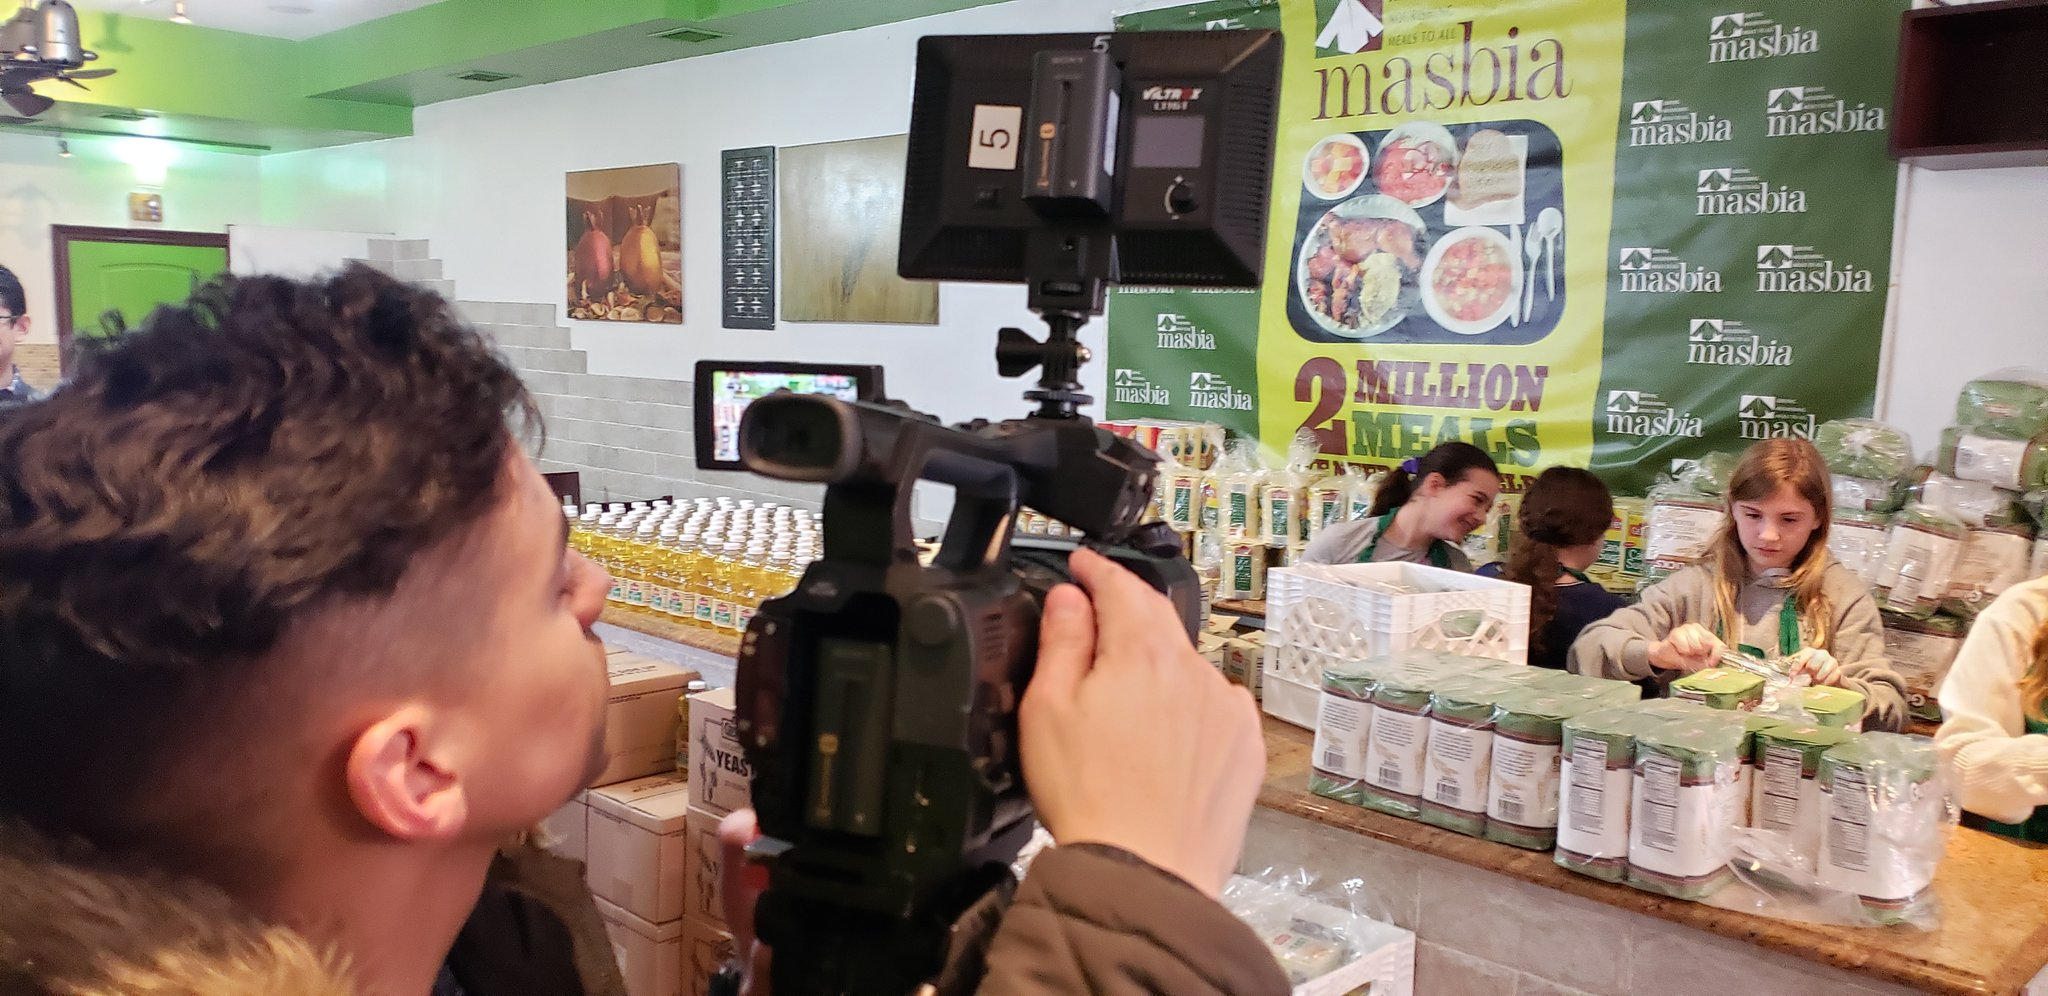 Arnold Davick reporter of News 12 Brooklyn presents Masbia story of Leora to distribute 1000 challahkits to the needy